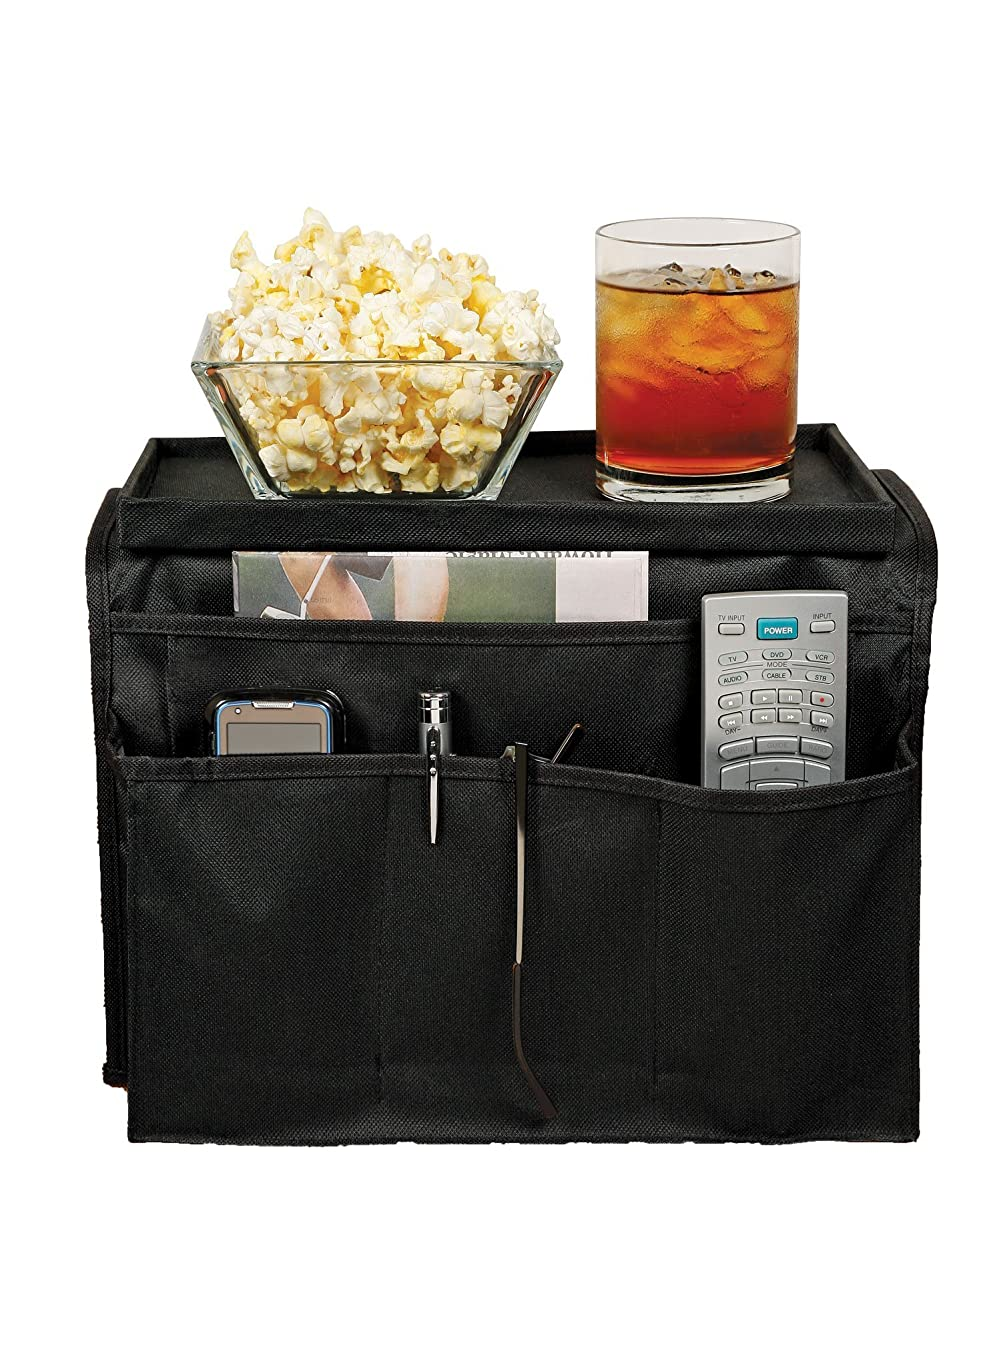 TV Remote Control Organizer Holder Caddy - Couch Armchair Caddy for Recliner as Arm Chair Organizer with Pockets for Snacks Glasses Smartphone Magazines Ipad Fits Arms 5 to 6 Inches Wide